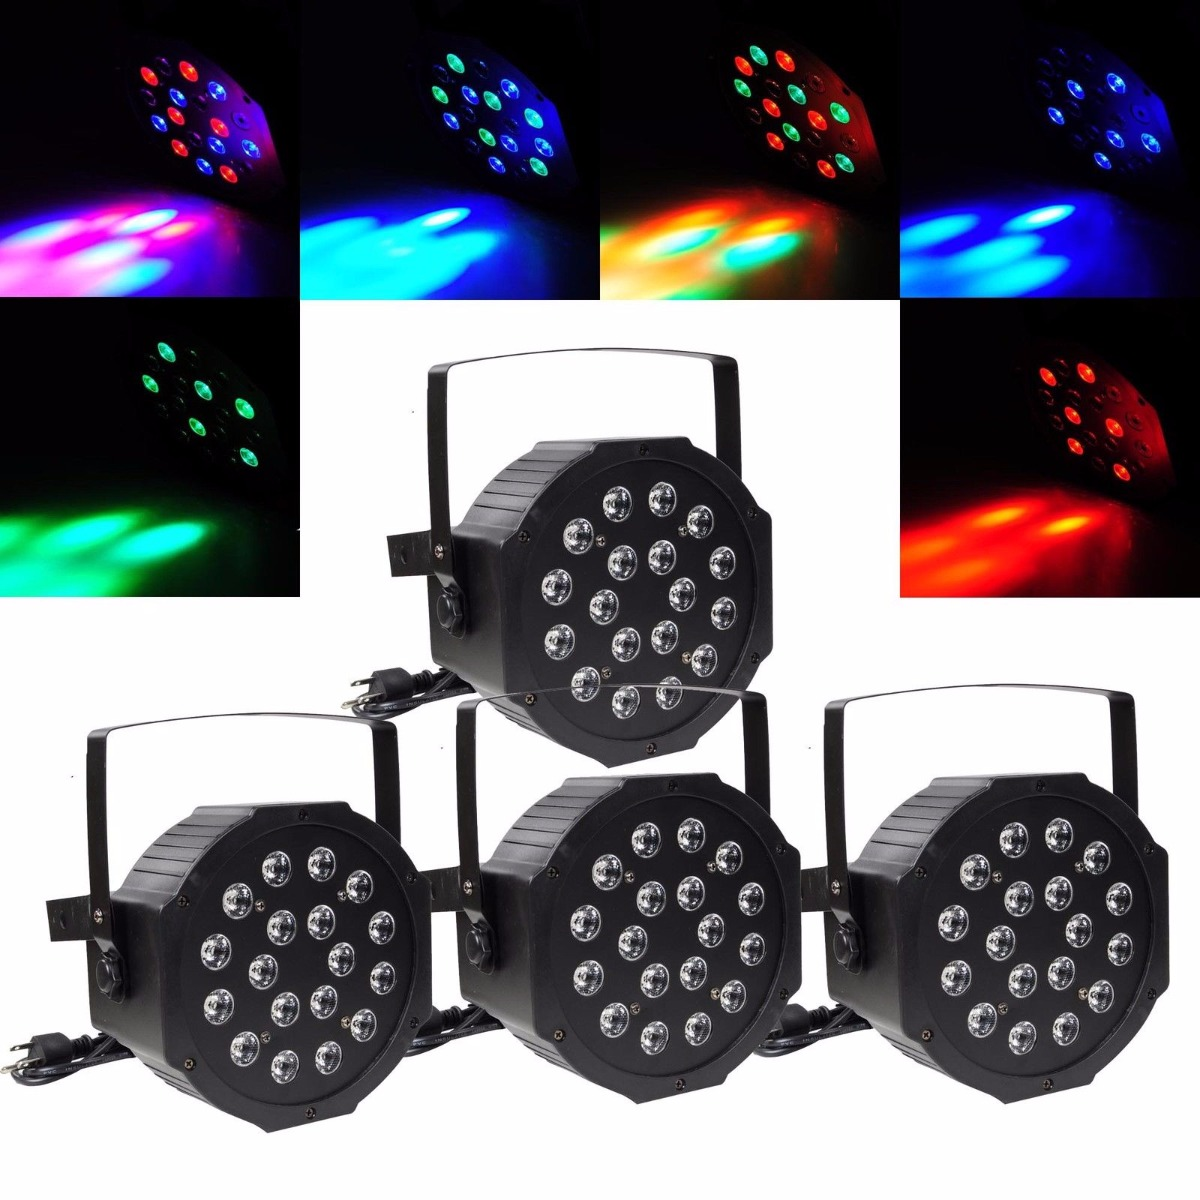 Masters Led Lighting 4pcs 18 Led Rgb Par Can Dj Stage Dmx Lighting For Disco